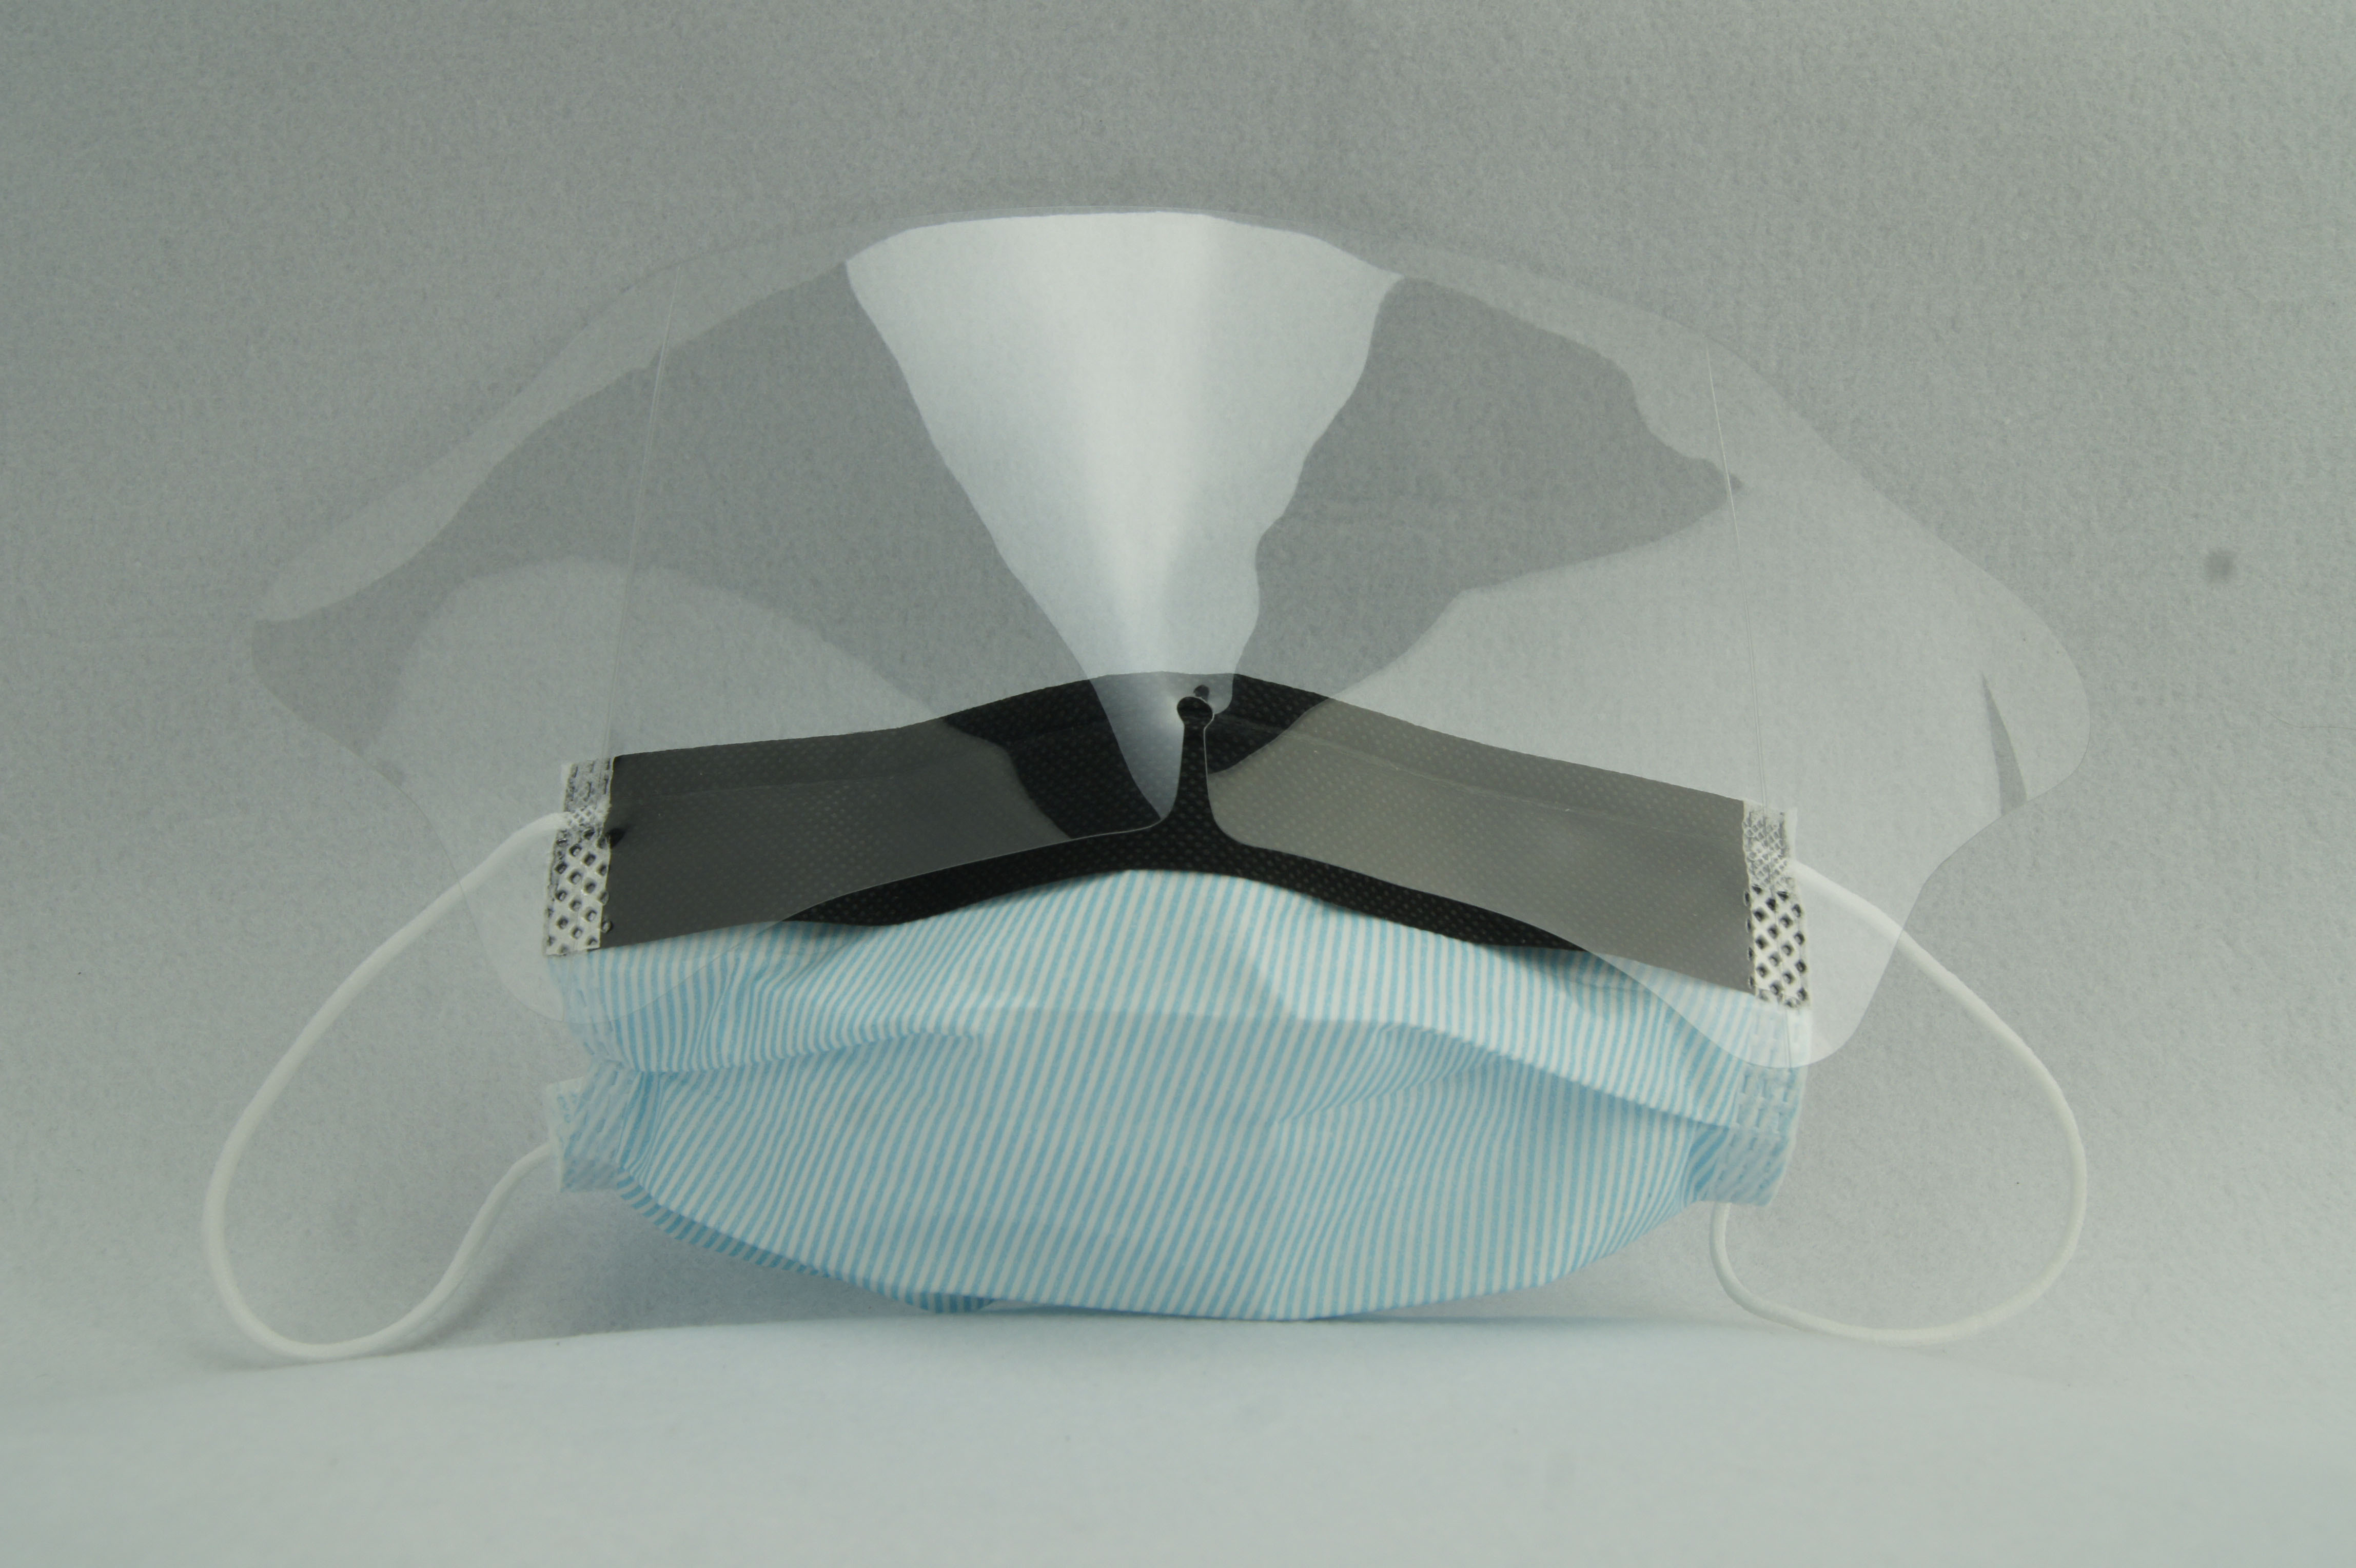 3 Ply Disposable Face Mask With Visor Eye Shield anti-virus anti-bacterial anti flu avoid cross-infection